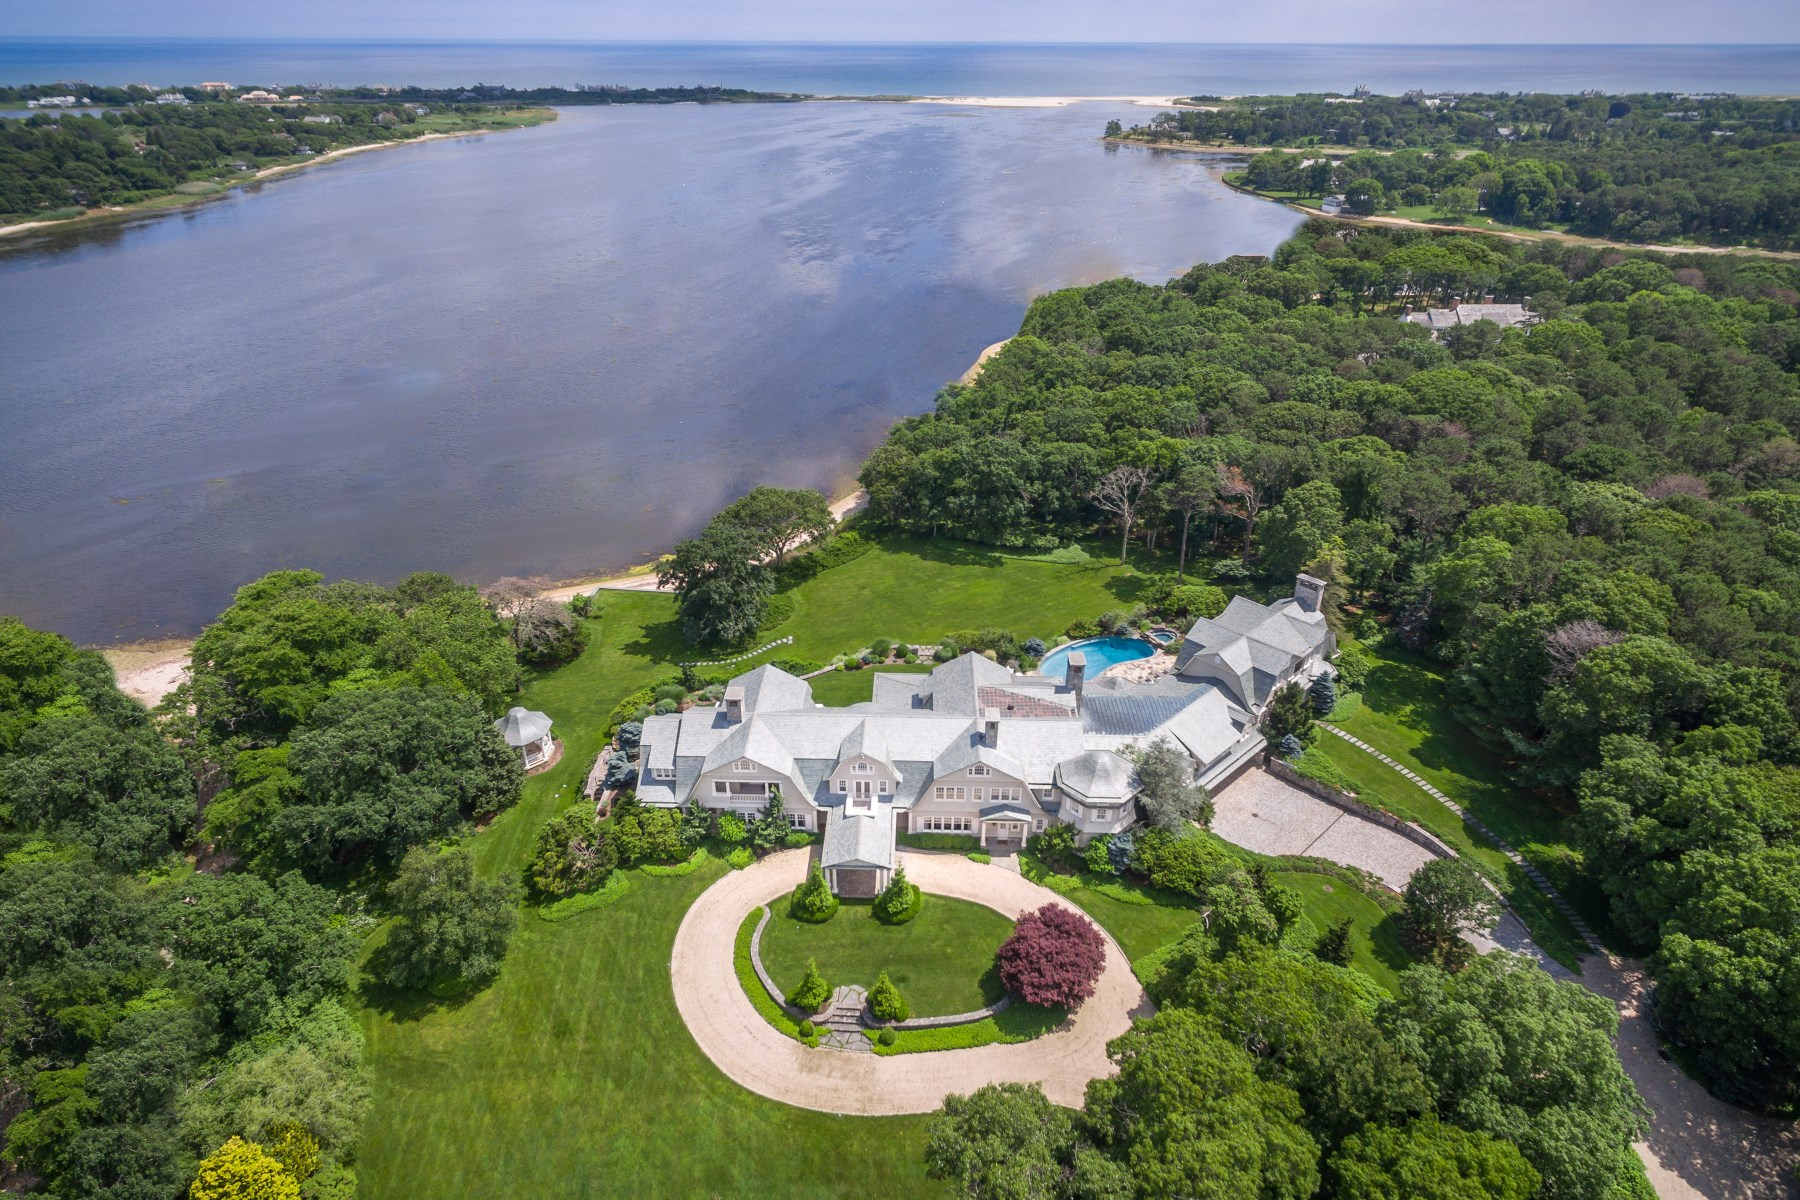 Single Family Home for Sale at Burnt Point 38 Mathews Road, Wainscott, New York 11975 United States